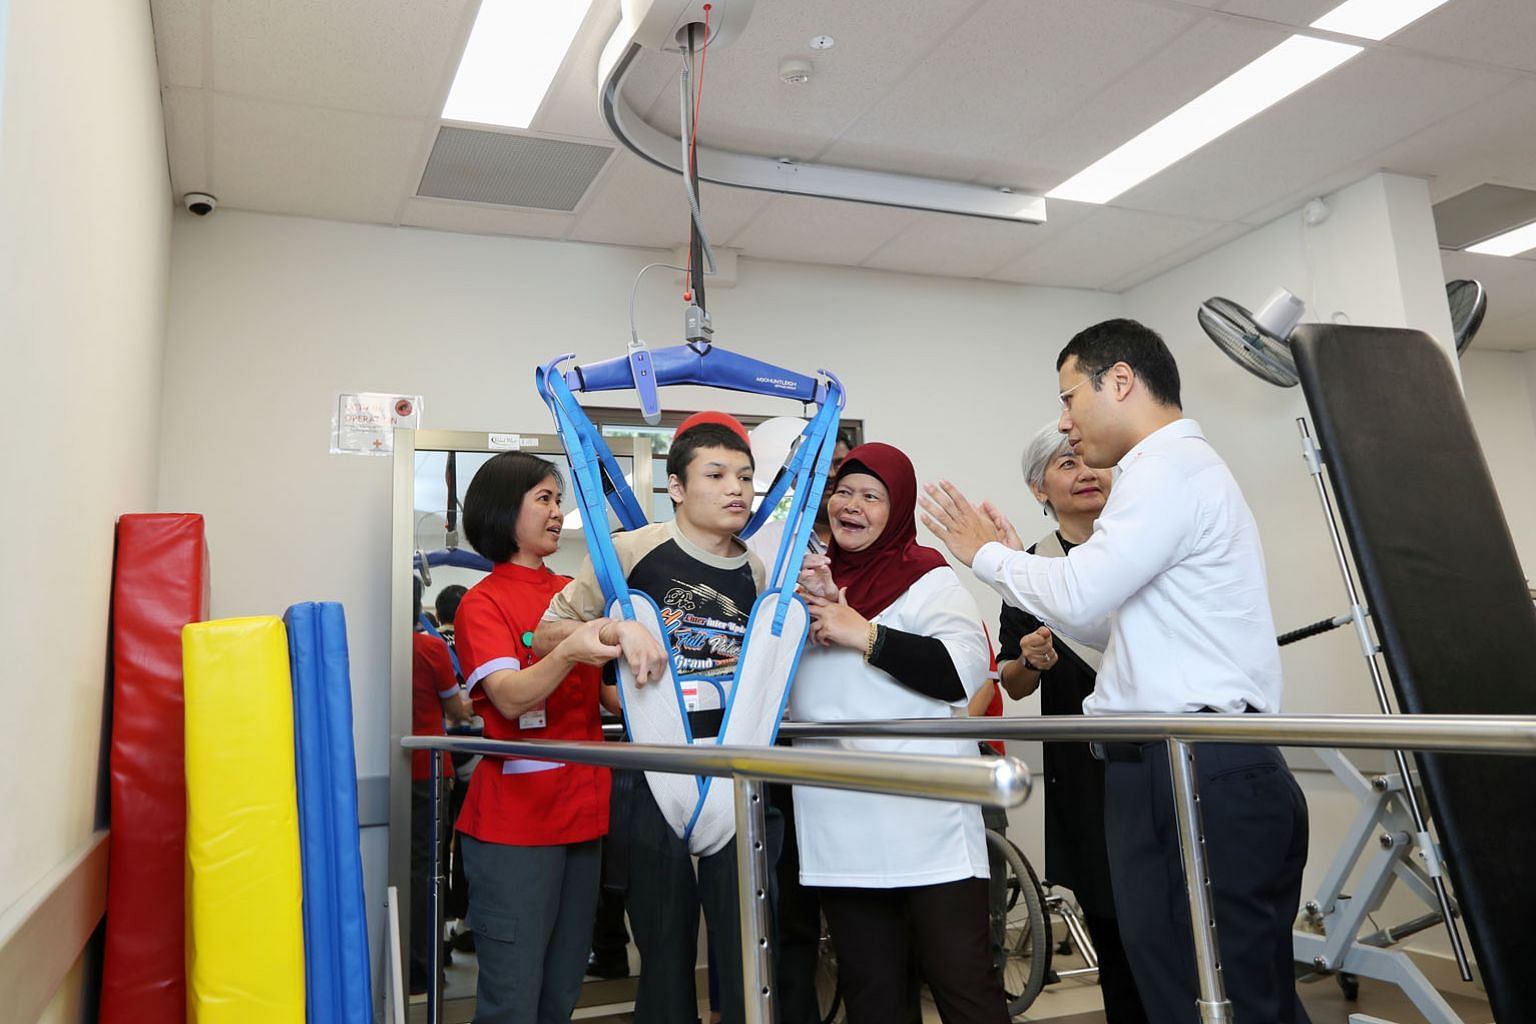 Mr Ahmad Fahmi Yusuf trying out a mechanical hoist in the new Day Activity Centre in Jurong West as Mr Desmond Lee, Minister for Social and Family Development, looks on.